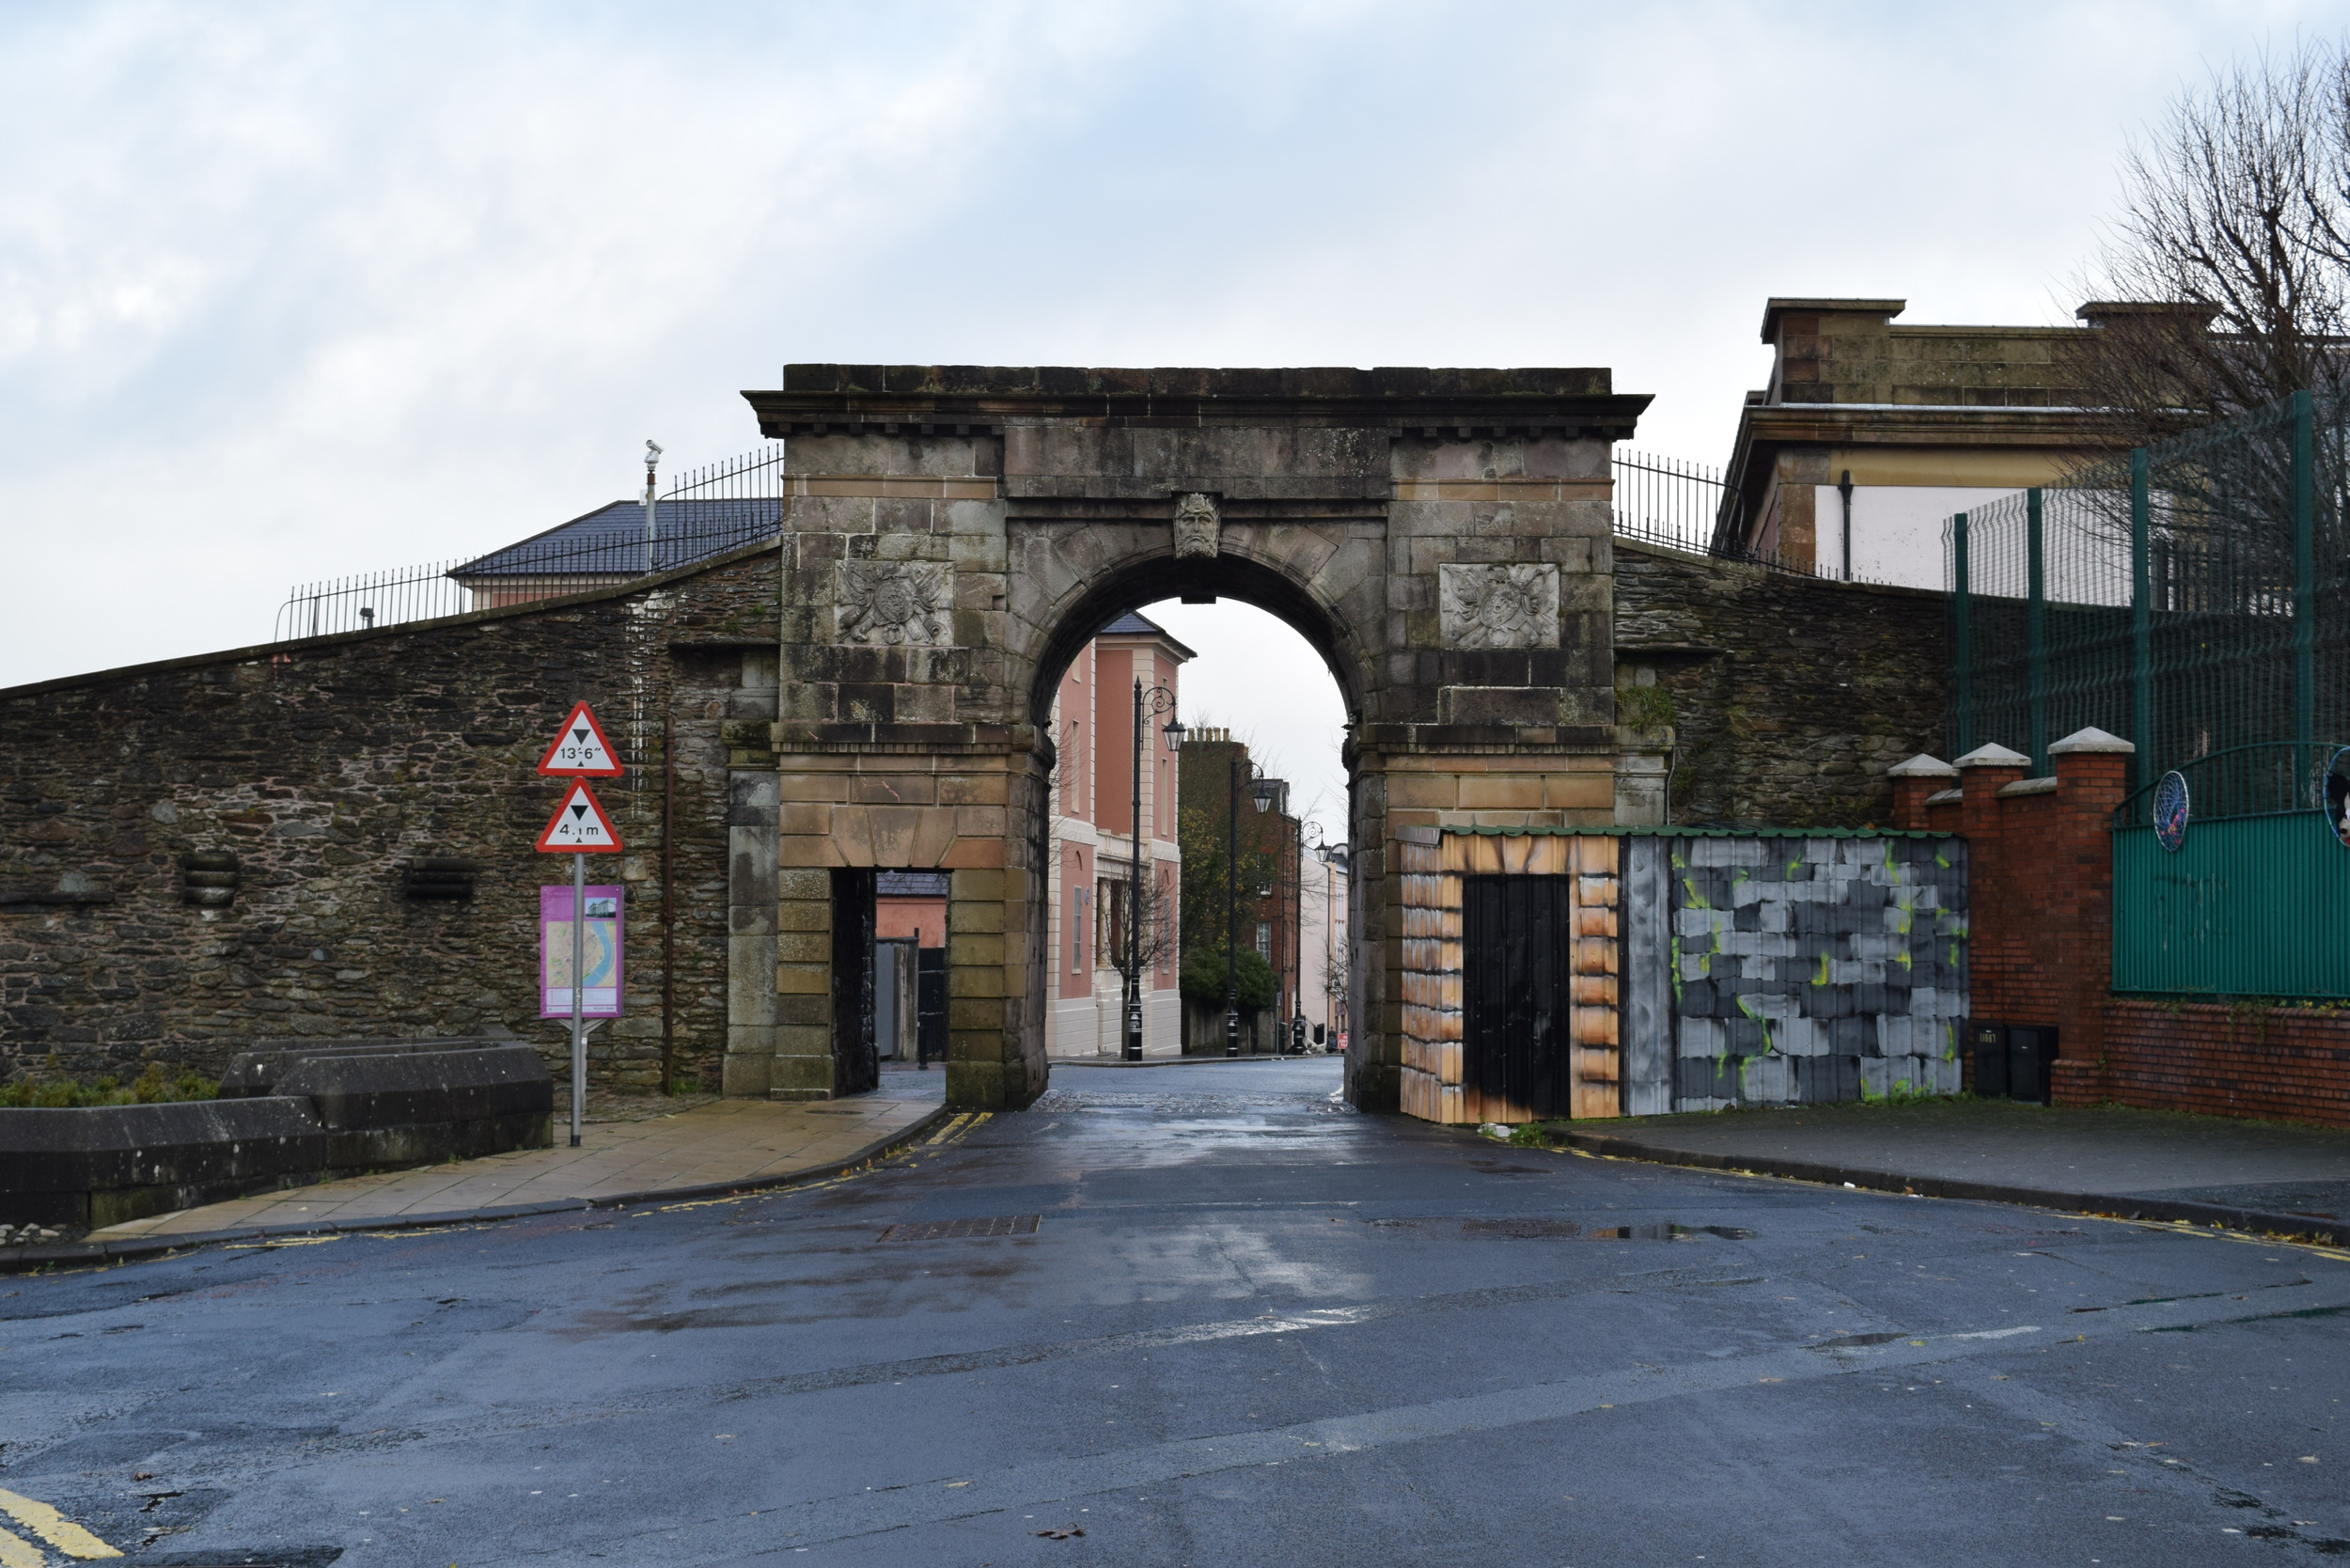 Derry city walls and gate